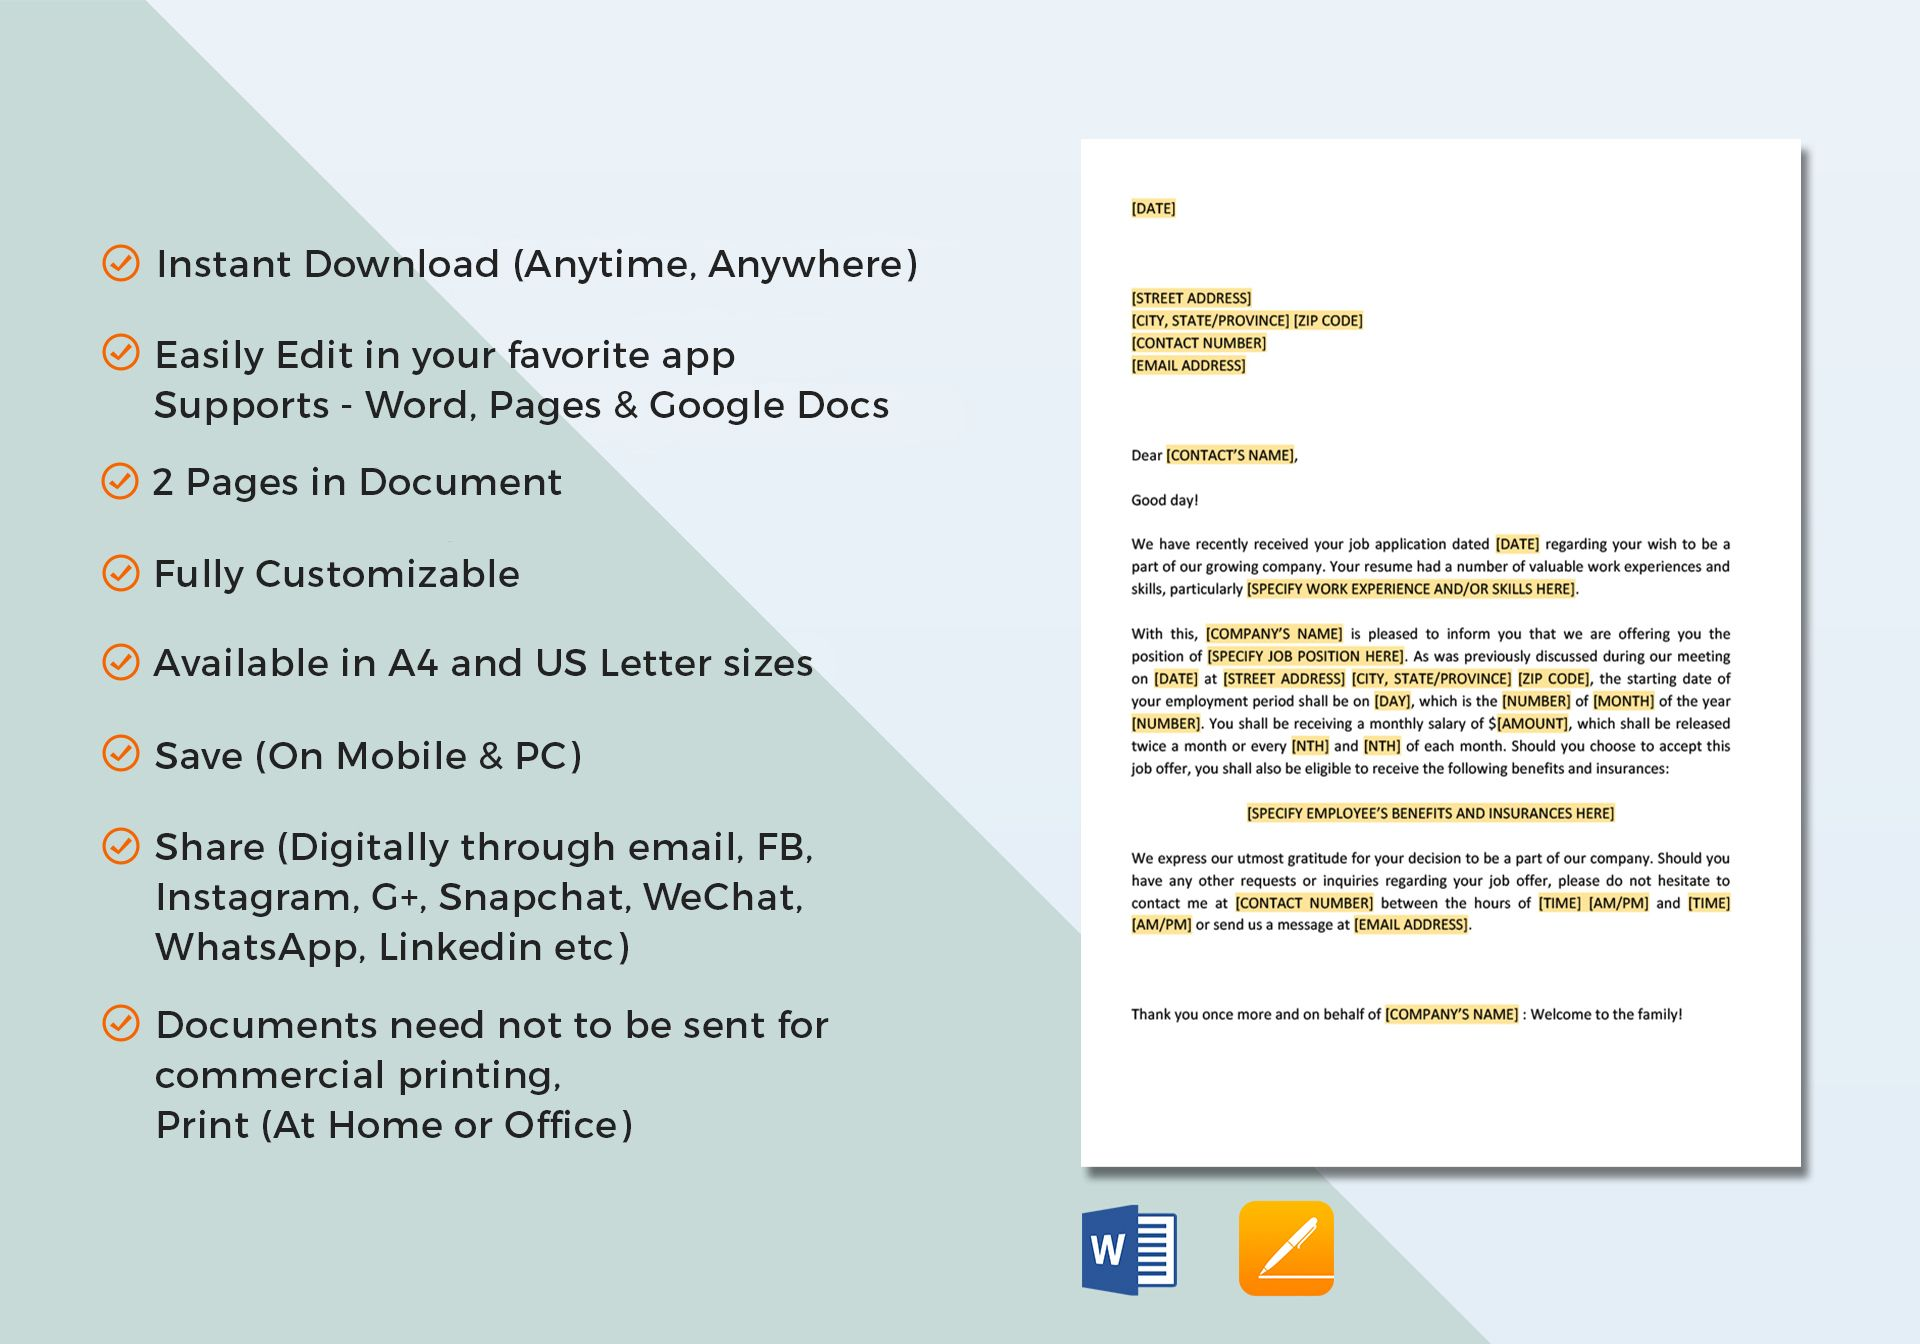 Character Design Job Offer : Employment offer letter template in word google docs